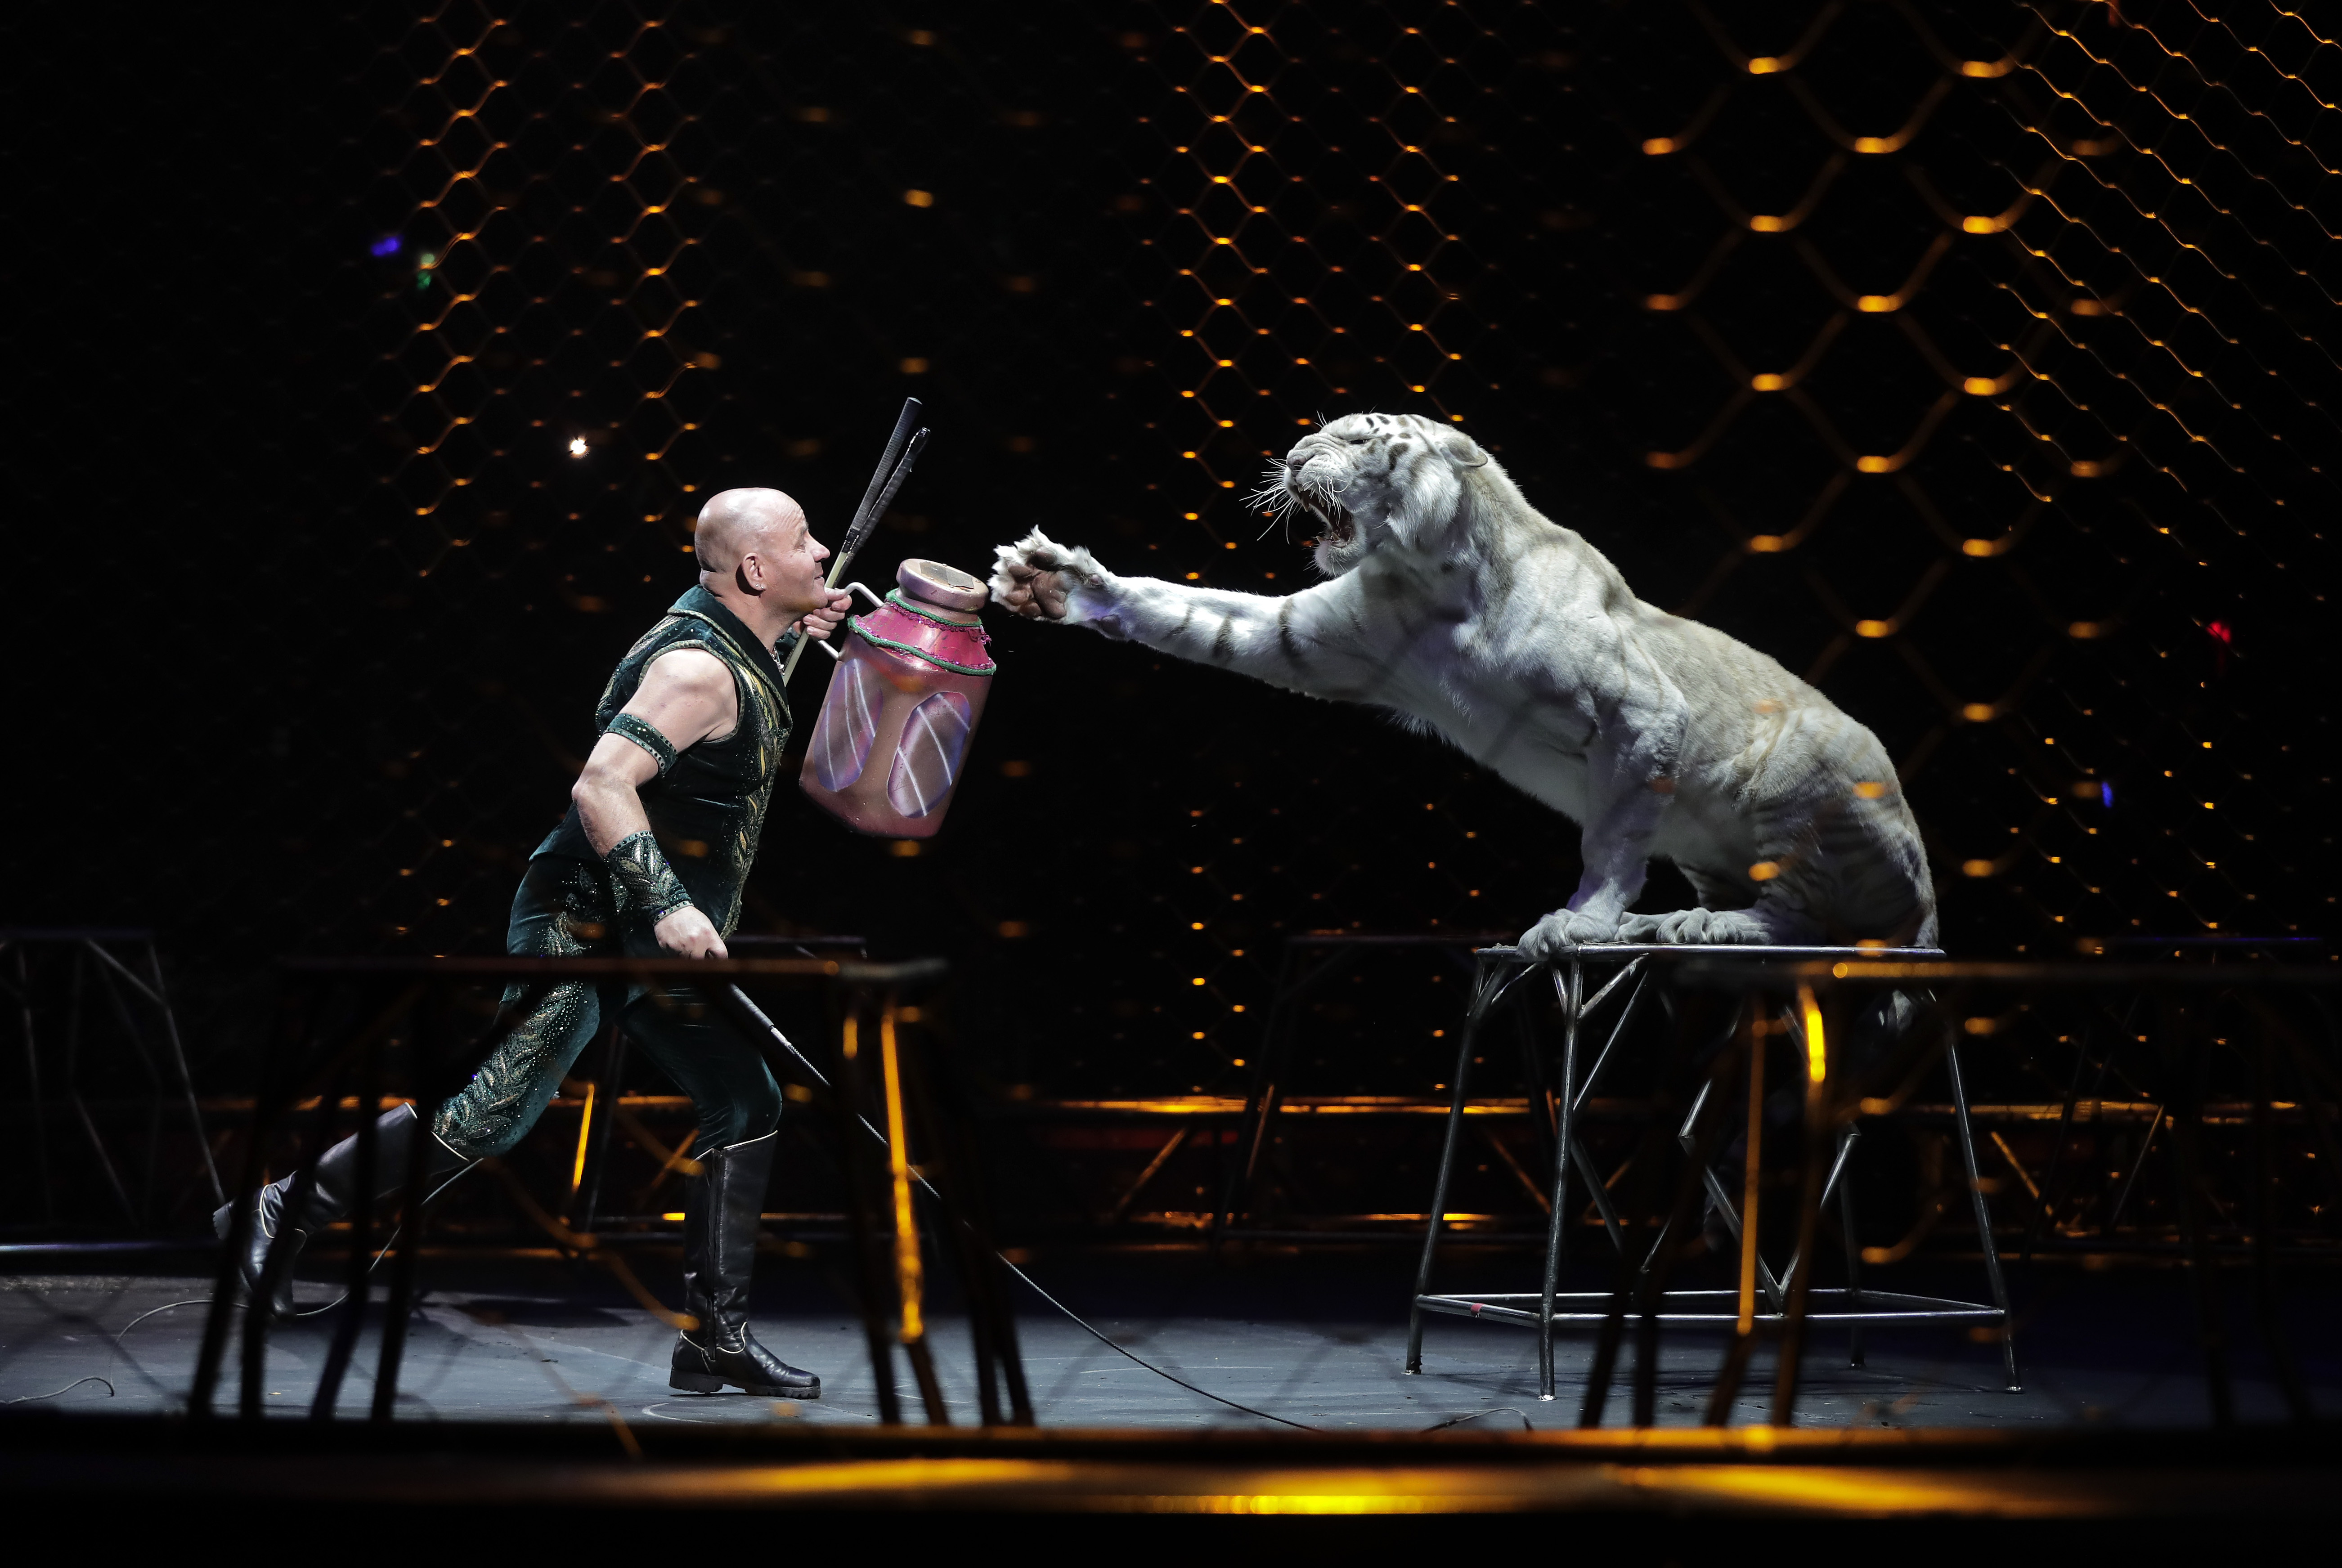 Ringling Bros. tiger trainer Taba Maluenda performs with a white tiger during a show on May 4, 2017, in Providence, R.I. (Julie Jacobson/Associated Press)